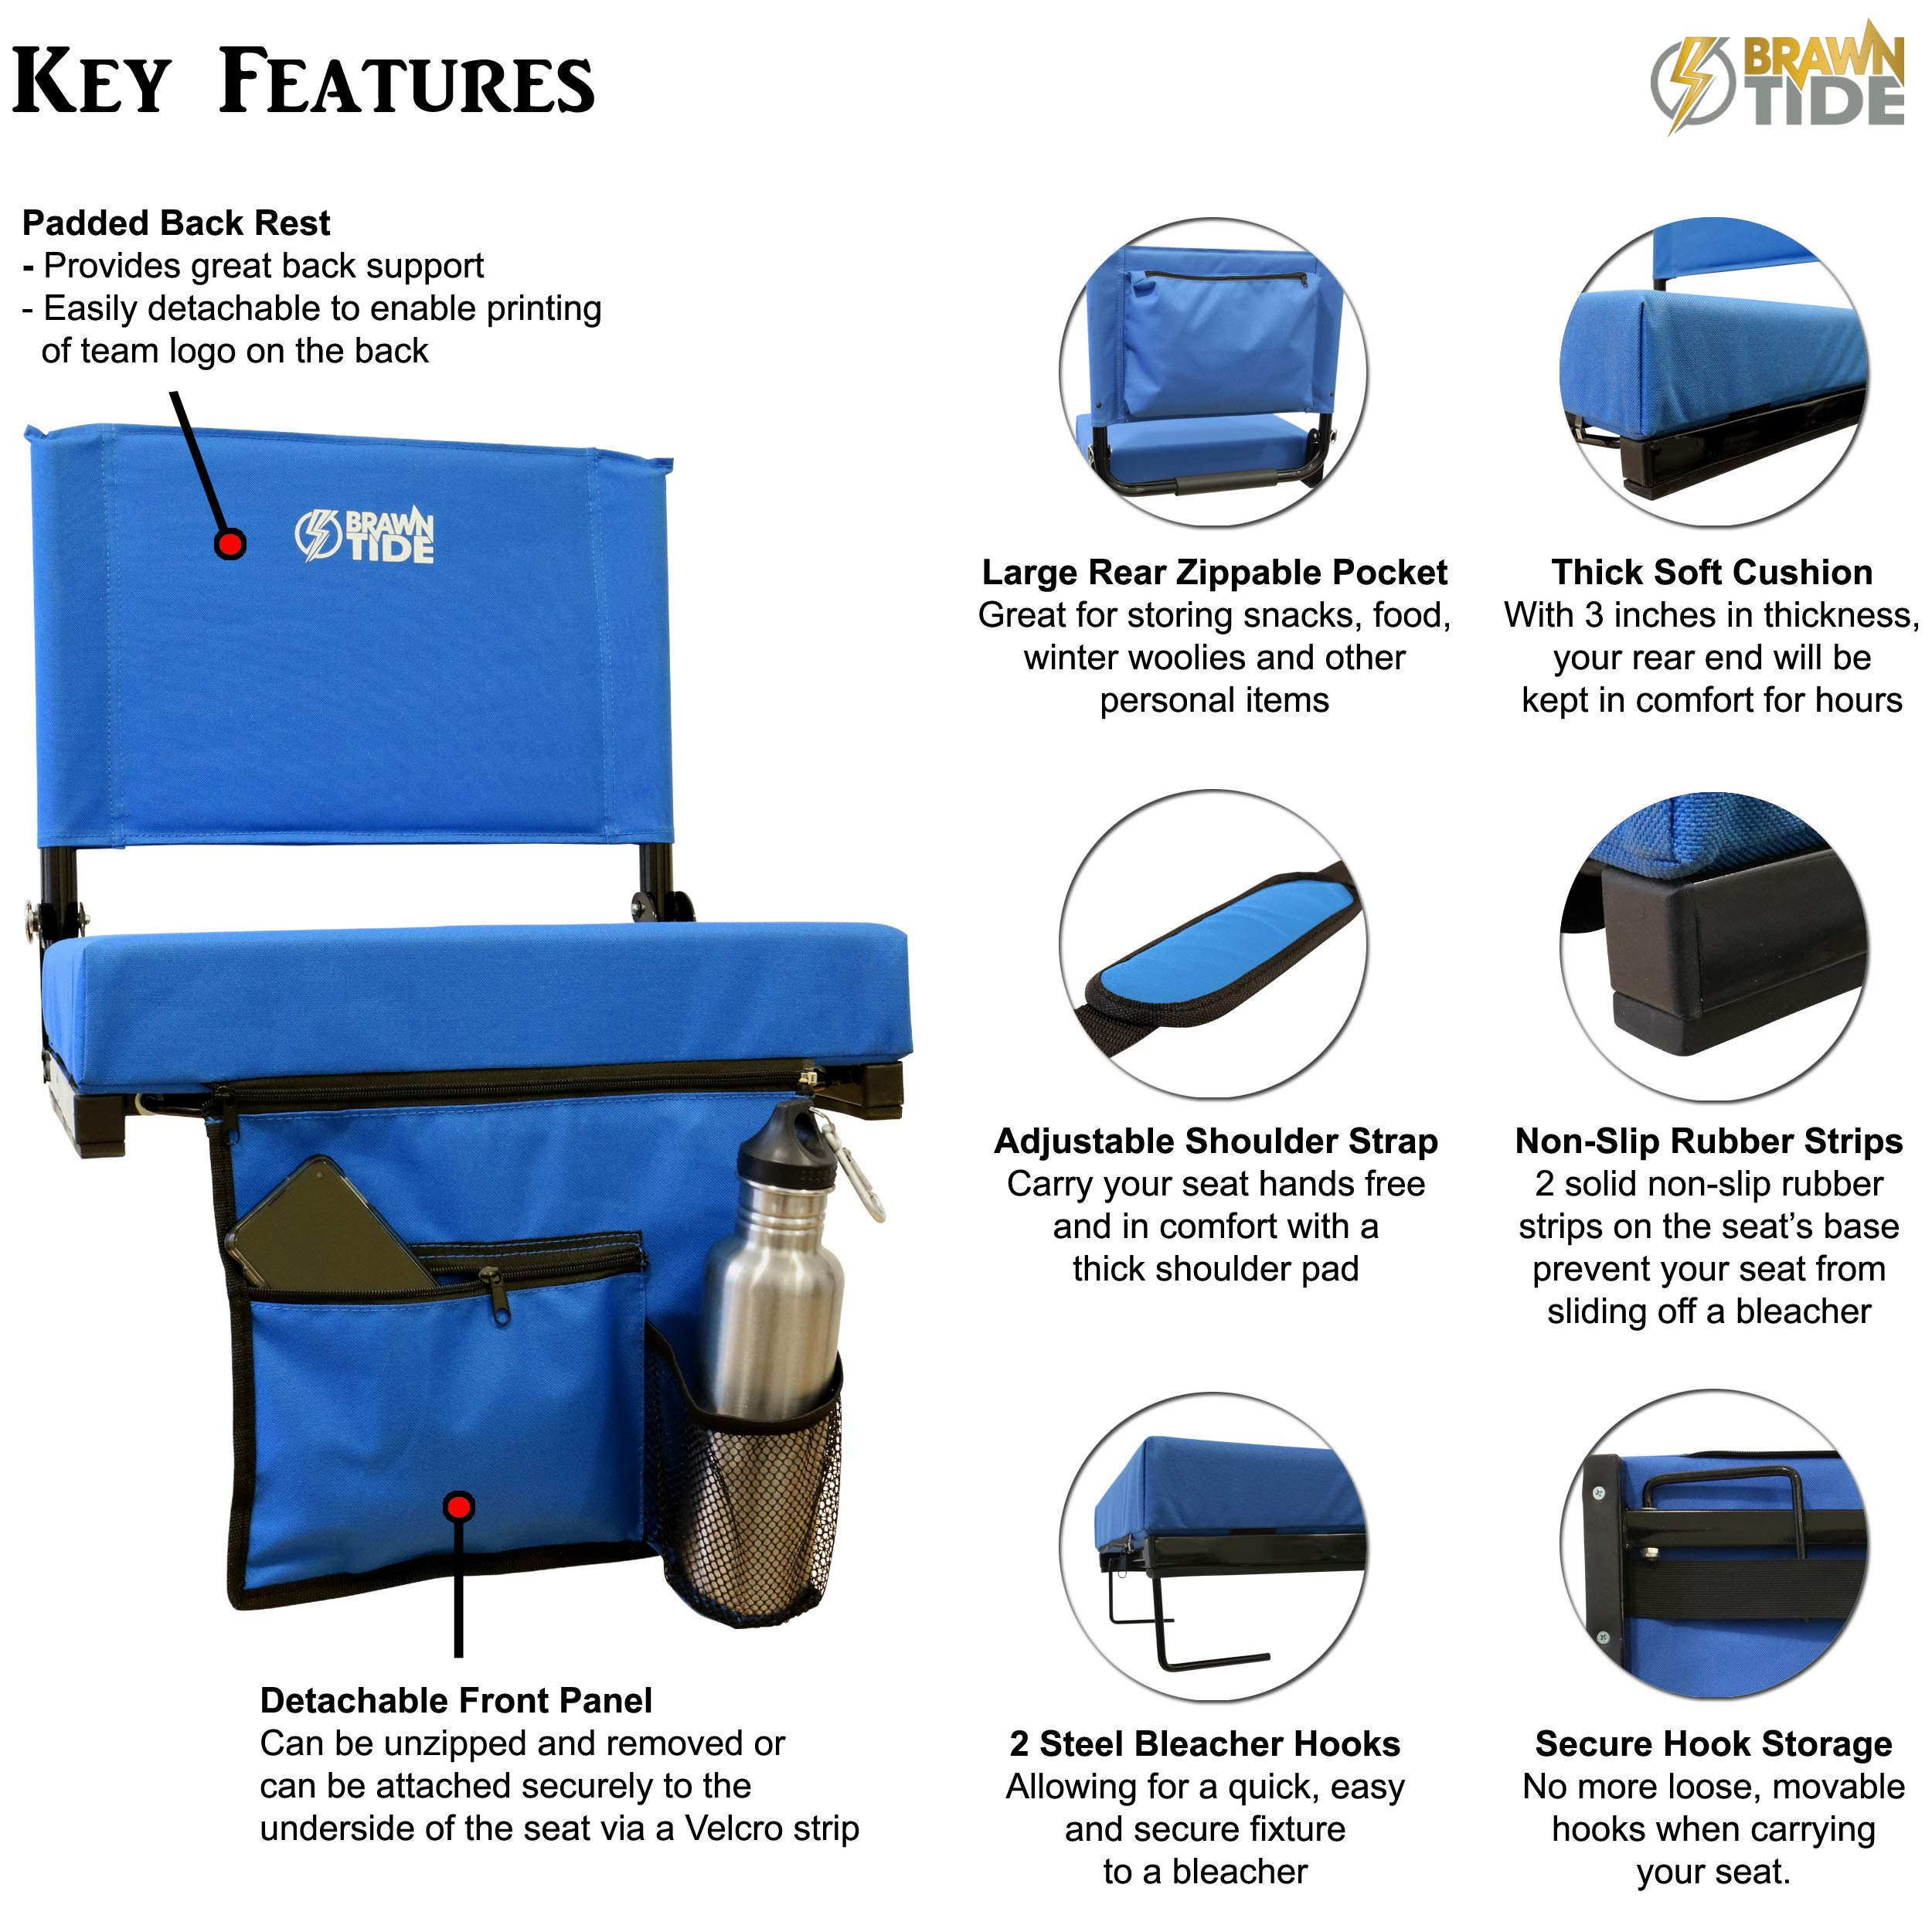 Brawntide Wide Stadium Seat Chair Light Carrying Handle Extra Thick Padding Shoulder Strap 2 Bleacher Hooks Compact Sporting Events 3 Storage Pockets Ideal for Back Support